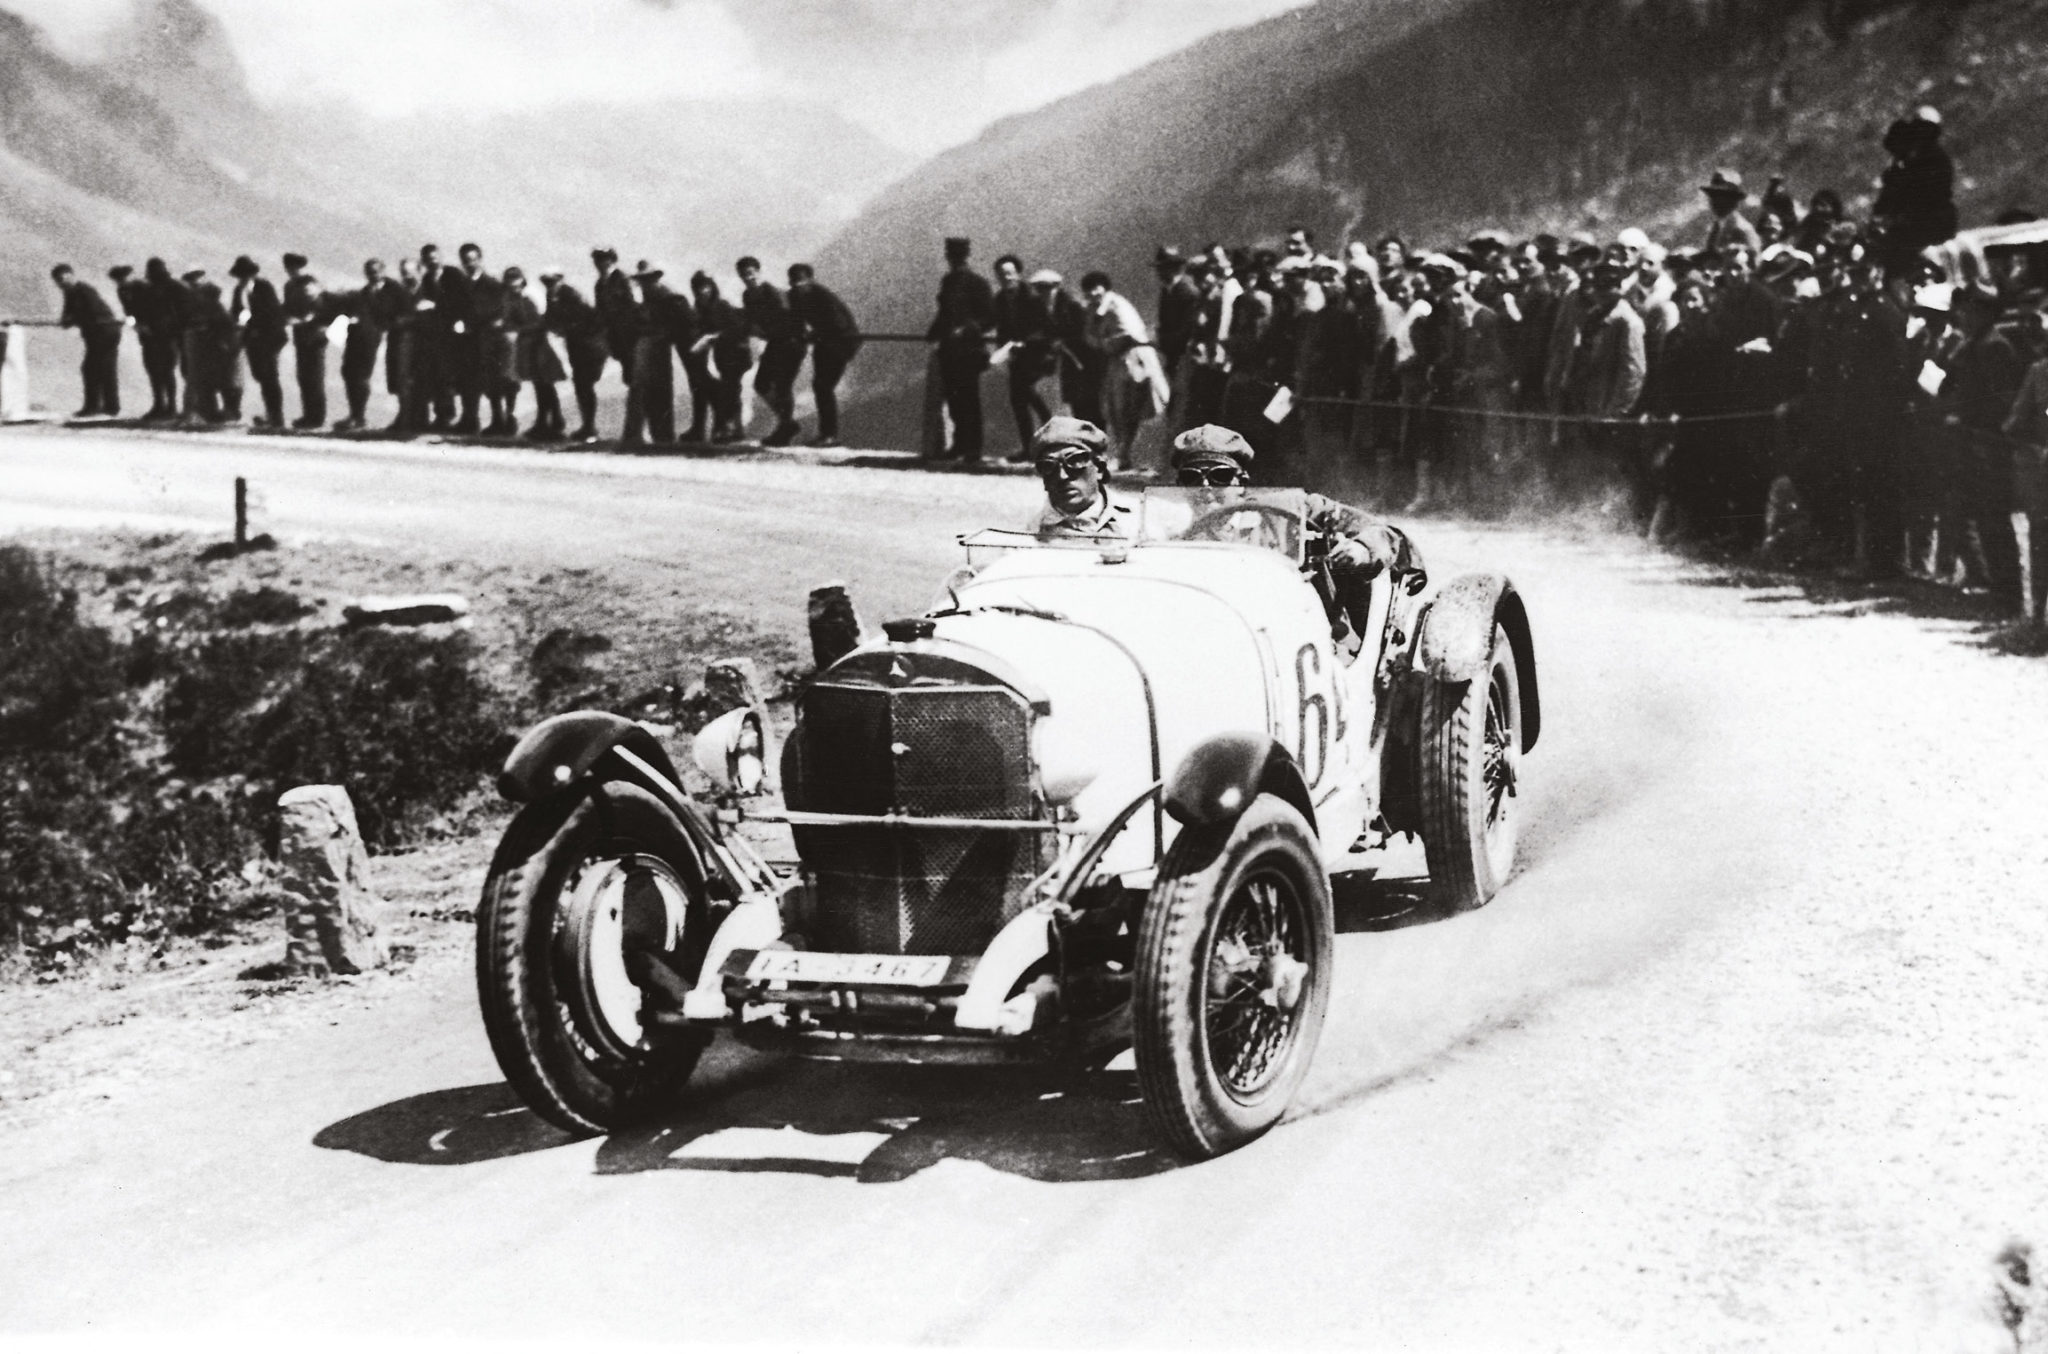 Rudi Caracciola wrestles his 7-litre Mercedes SSK up the Klausen climb in 1930, winning the sports car award